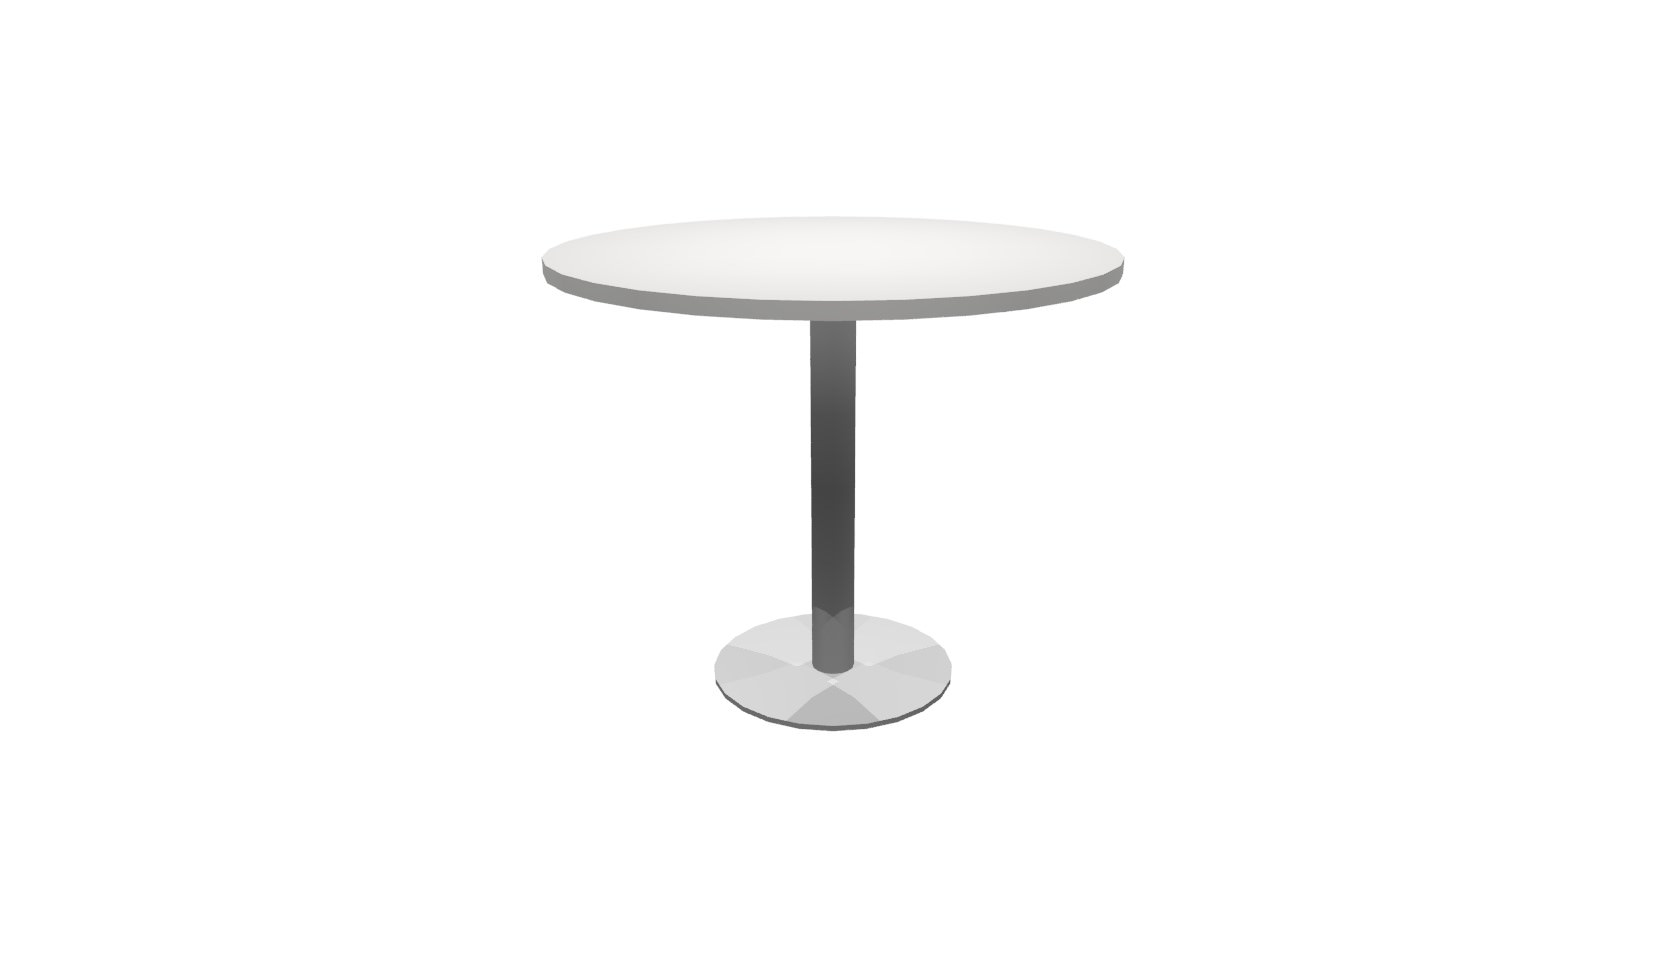 Round Glass Meeting Table Round Designs - Round glass conference table